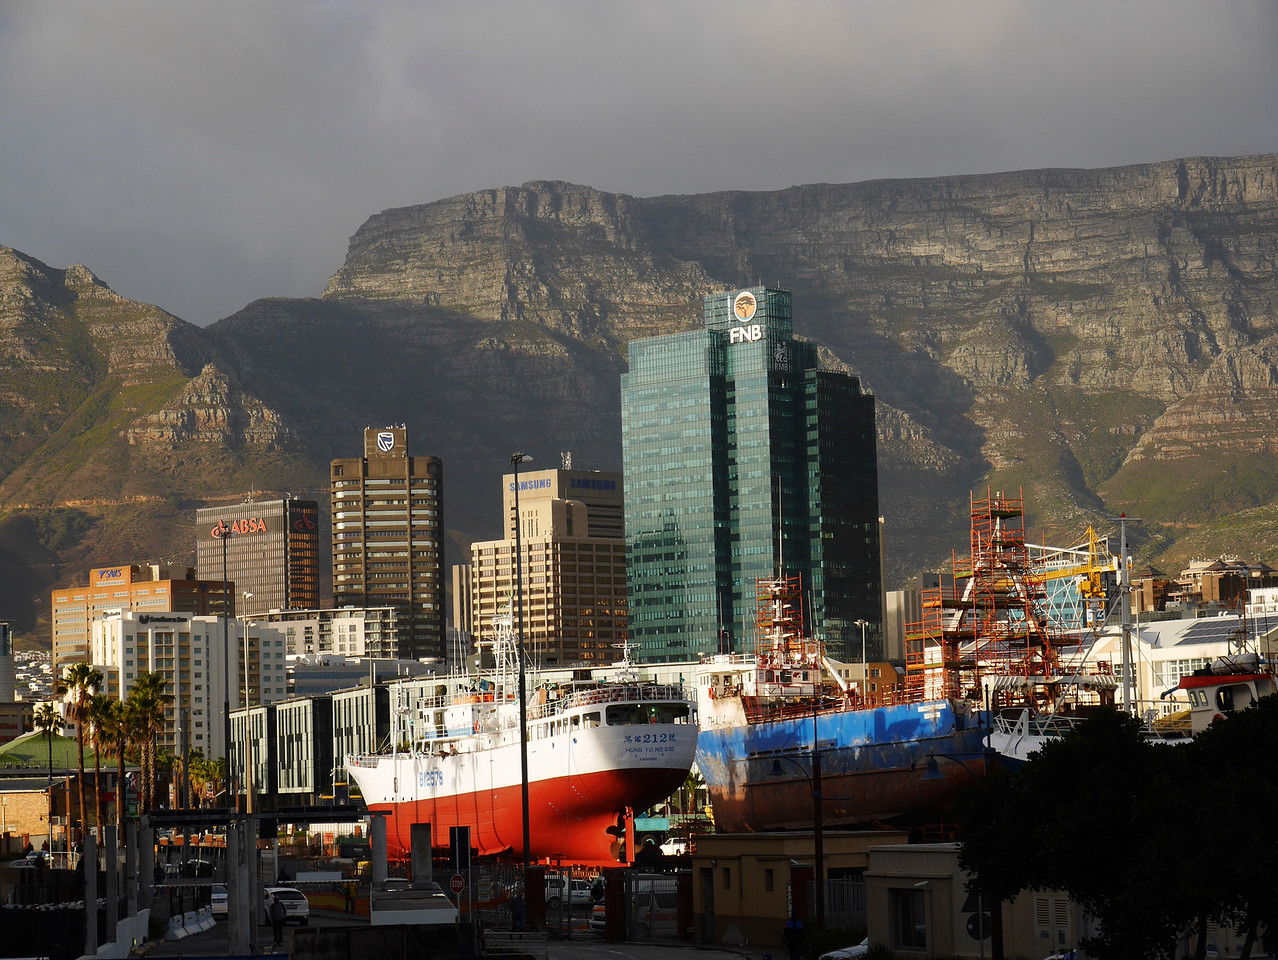 The waterfront area has great views of Table Mountain and the skyline of Capetown. This is where  many of the fancy hotels and restaurants are located.